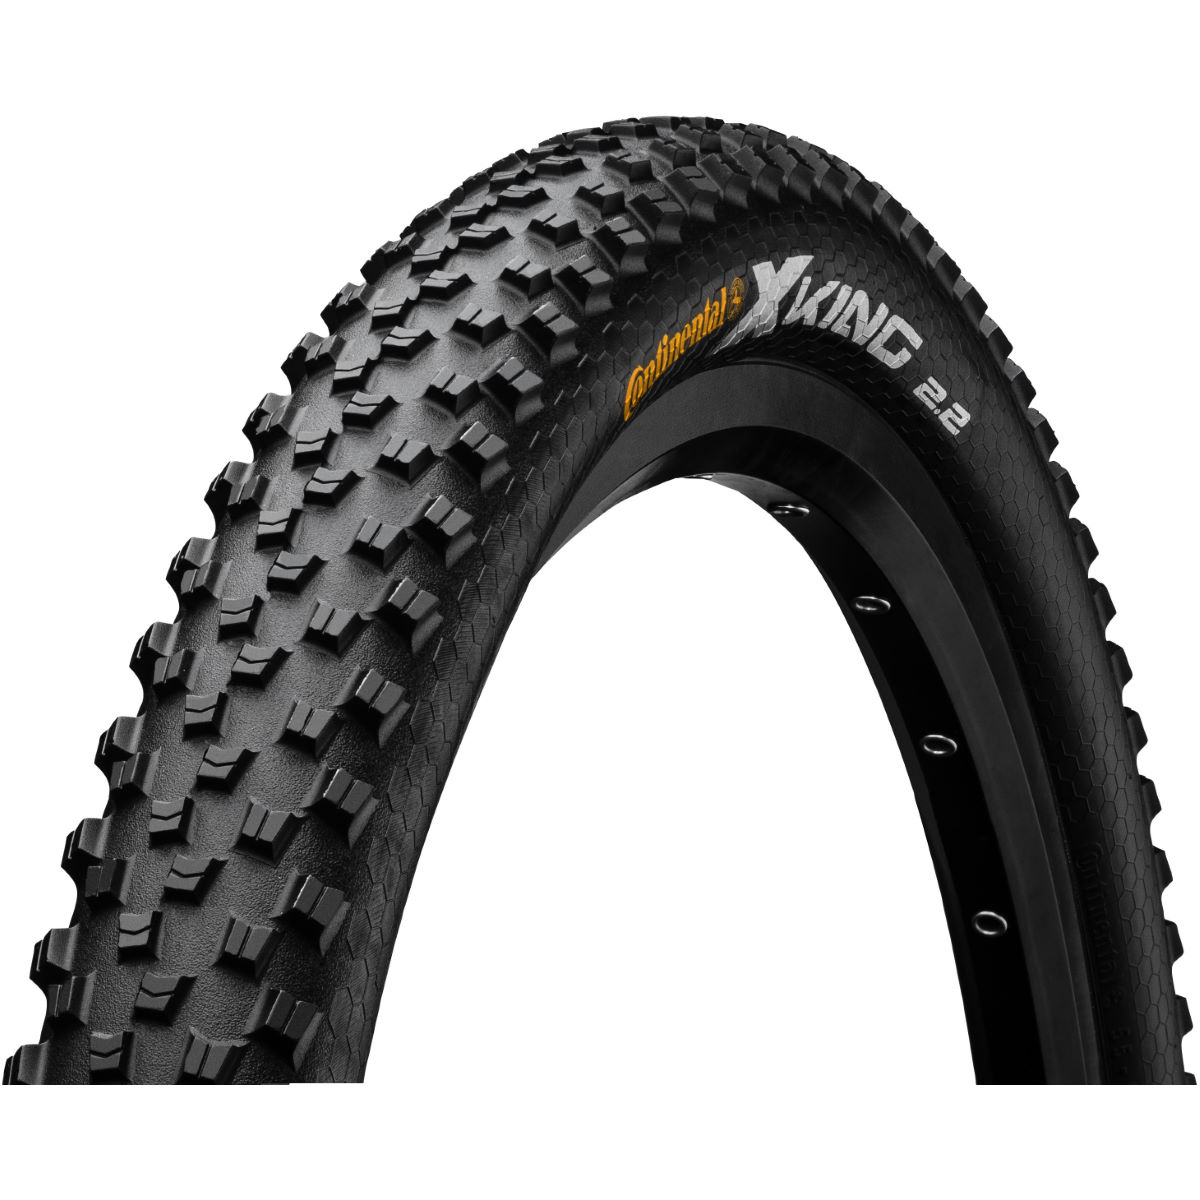 Schwalbe X-one Allround Microskin Folding Tyre   Tyres